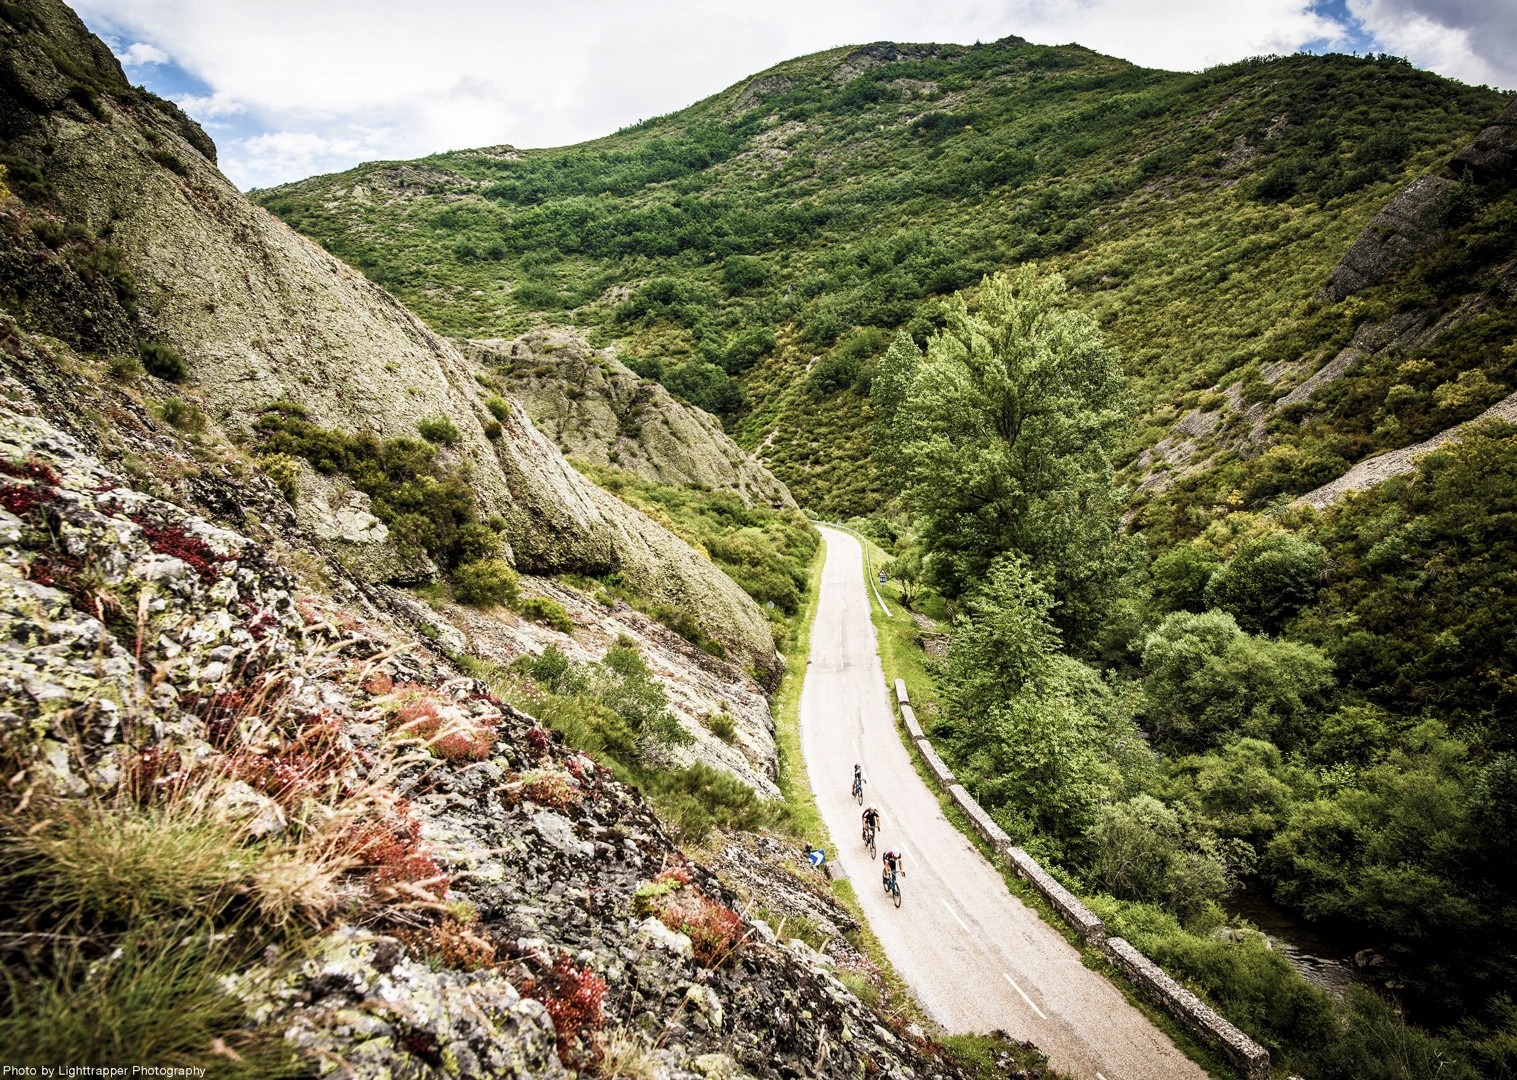 stunning-views-santiago-cantabrica-mountains-cycle-holiday.jpg - Northern Spain - Road to Santiago - Guided Road Cycling Holiday - Road Cycling